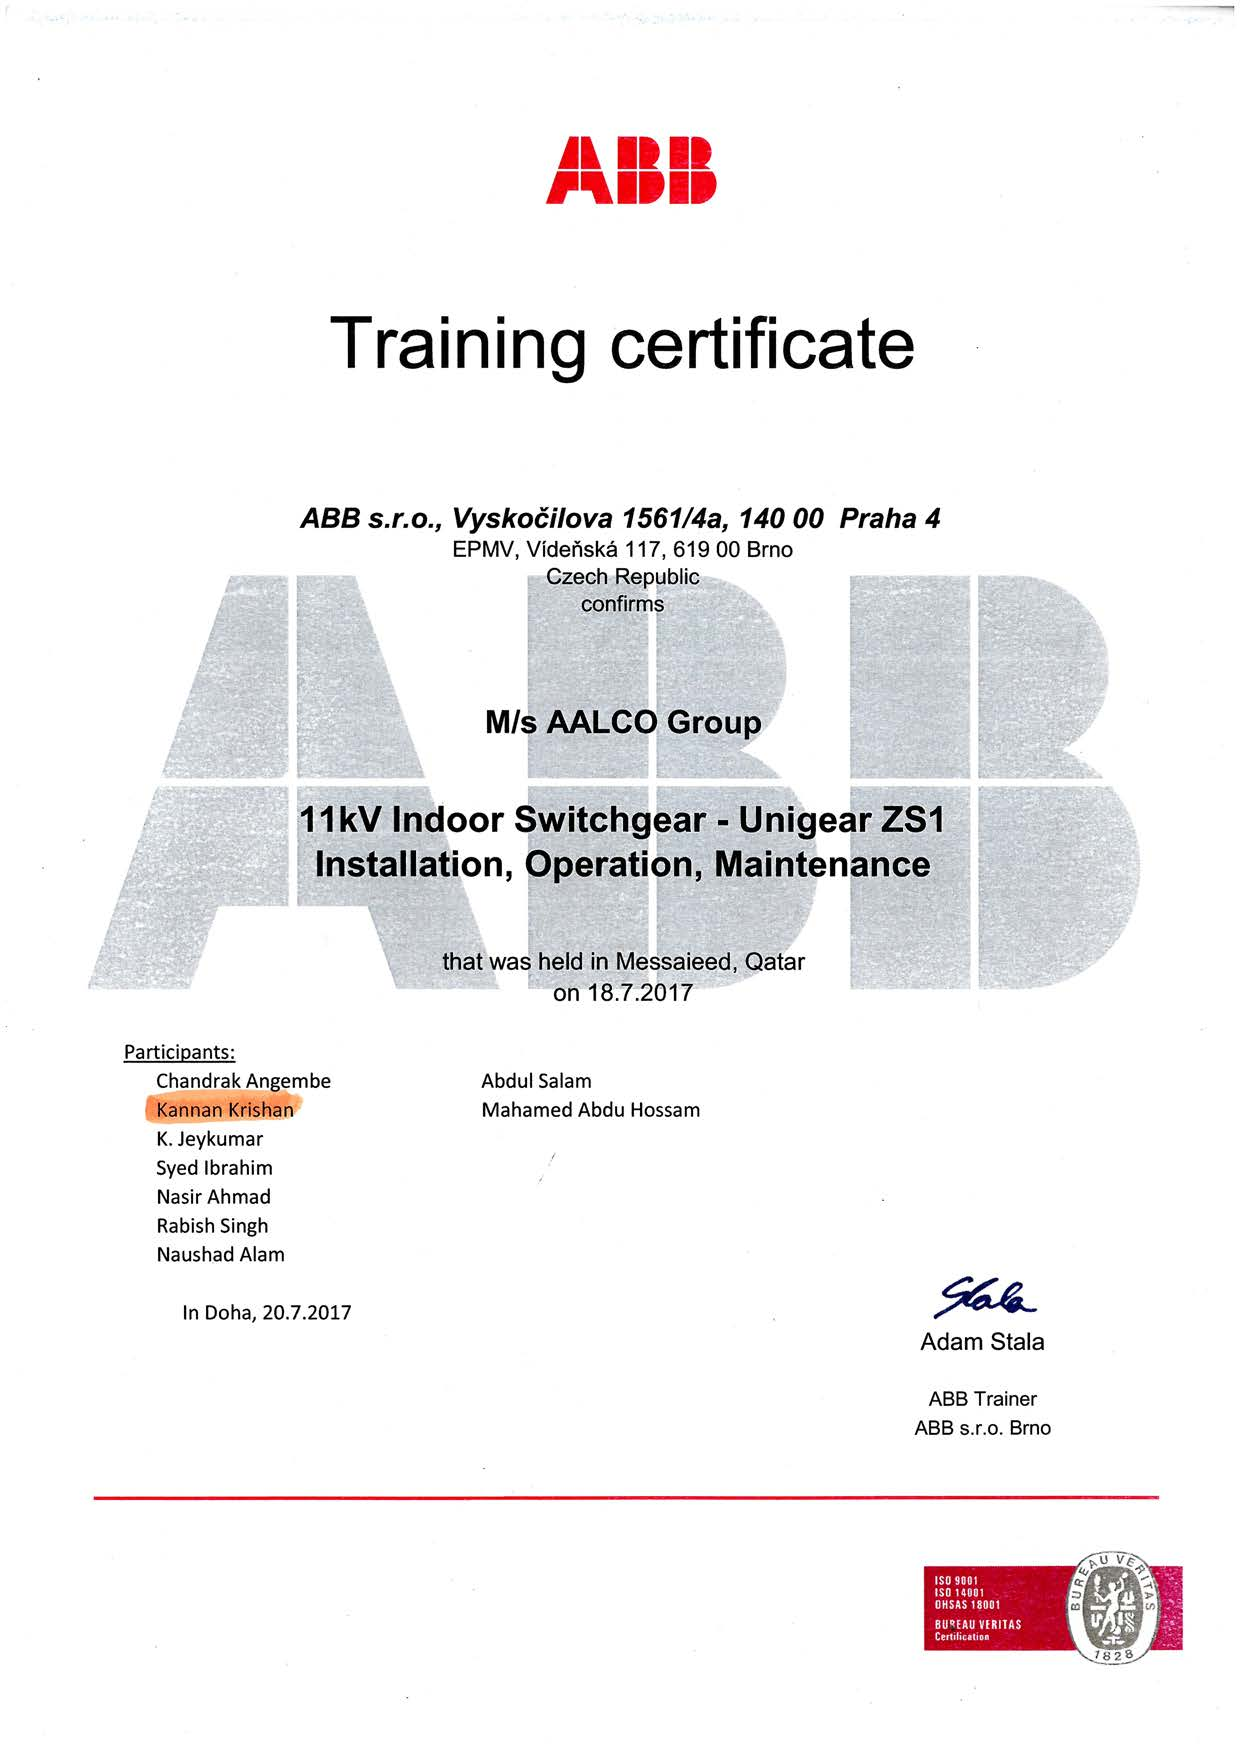 ABB Training Certficate